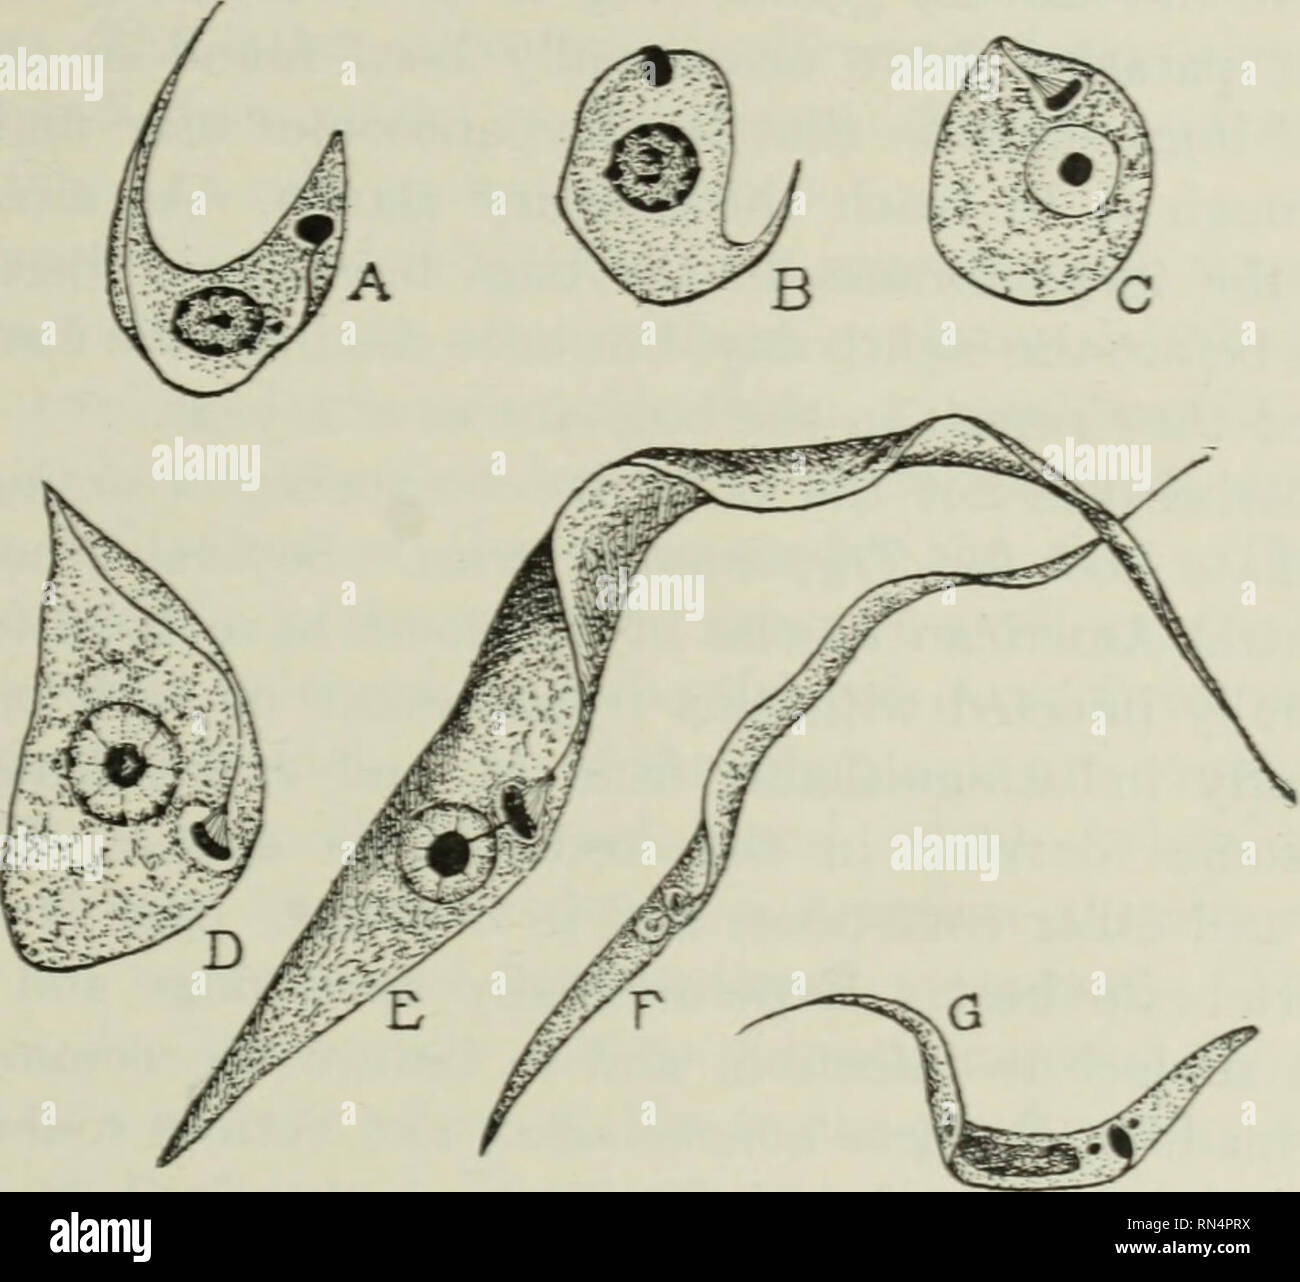 . Animal parasites and human disease. Parasites; Medical parasitology; Insects as carriers of disease. CHAGAS' DISEASE — PARASITE IN BUG 111 transmitting agent of the trypanosonie. A few hours after a bug has fed on infected blood the trypanosomes begin to change form in the midgut, becoming round and Leishmania-like in form, losing the flagellum and undulating membrane (Fig. 28A, B and C.) Then comes a period of very rapid increase in number, the parasites gradually pushing backward toward the hindgut by sheer multiplication. After about two days Crithidia forms begin to develop and become nu - Stock Image